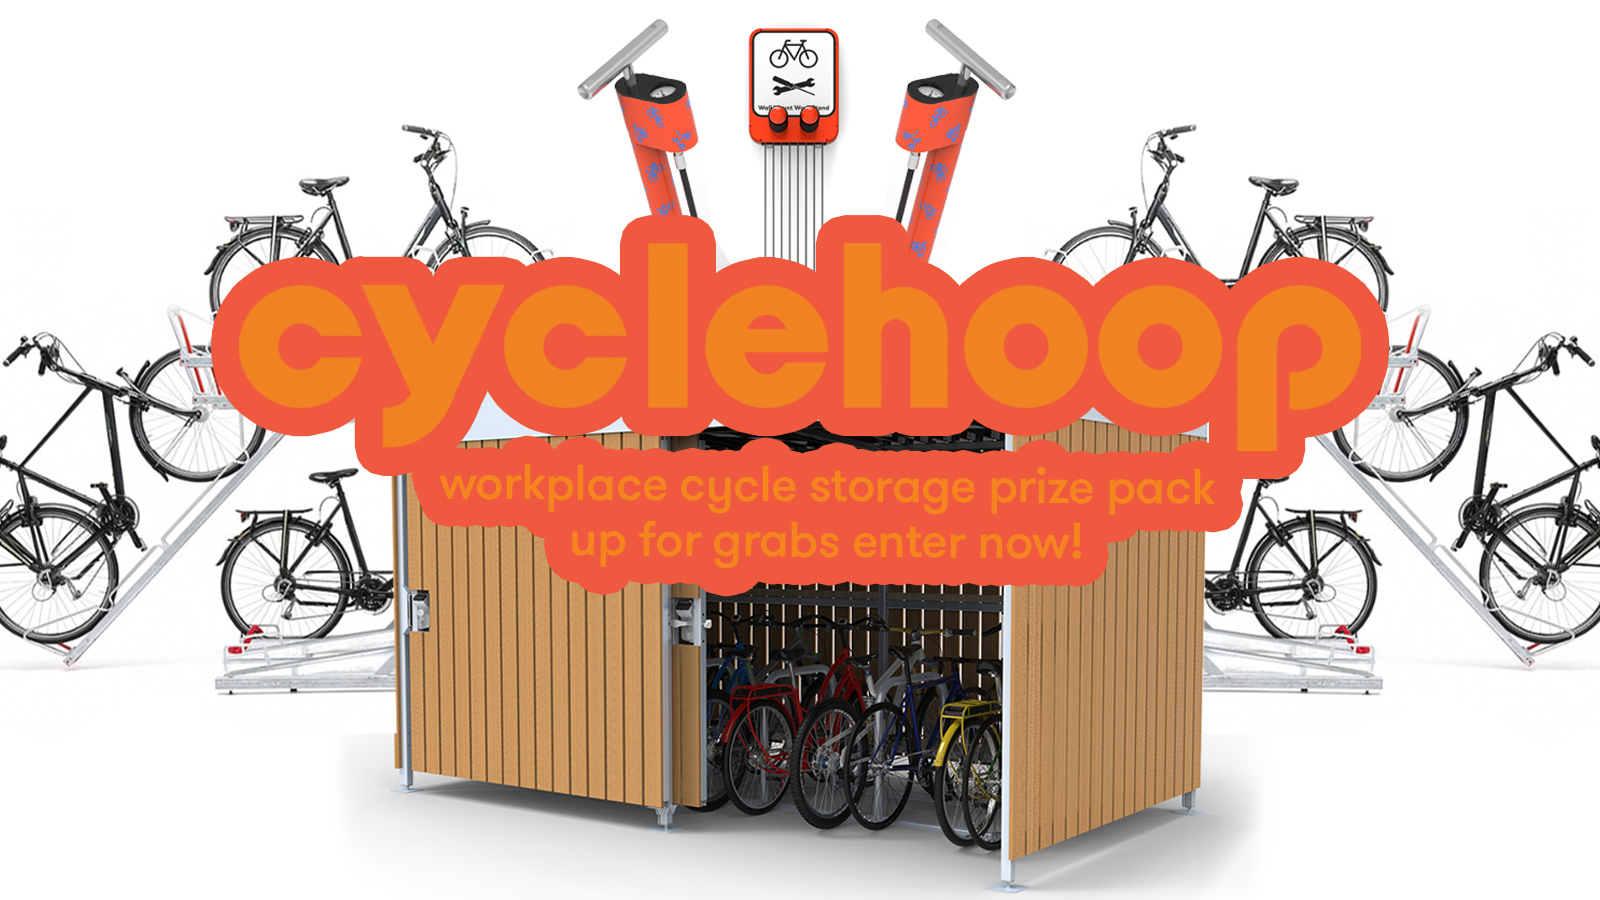 A bike shed in the centre, surrounded by bikes on leaning cycle stands. In the centre is the Cyclehoop logo and underneath it says 'workplace cycle storage prize pack up for grabs enter now!'